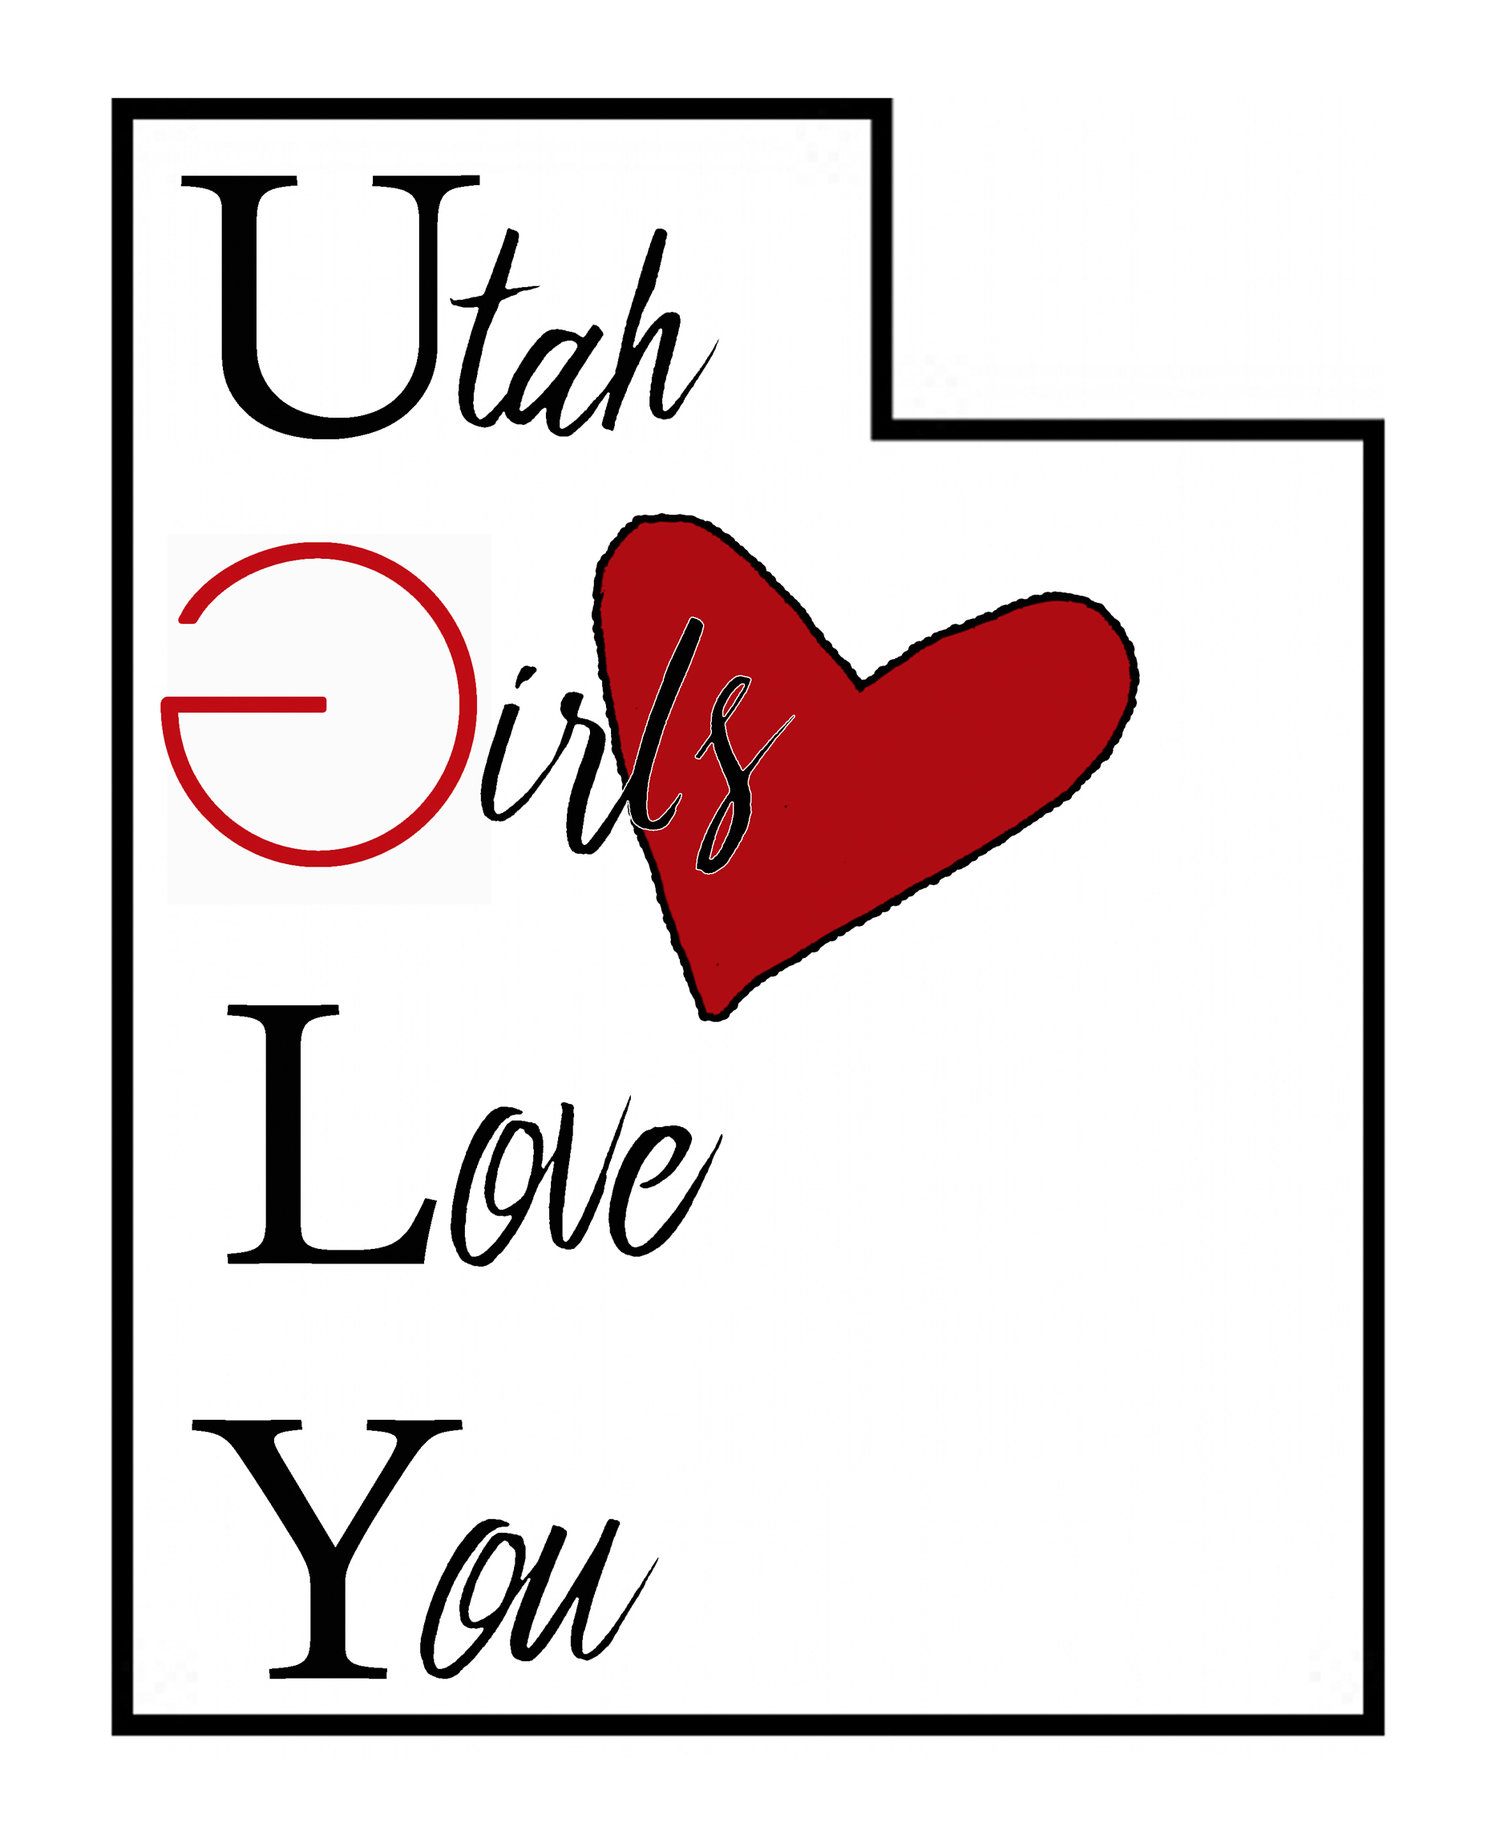 Utah Girls Love You